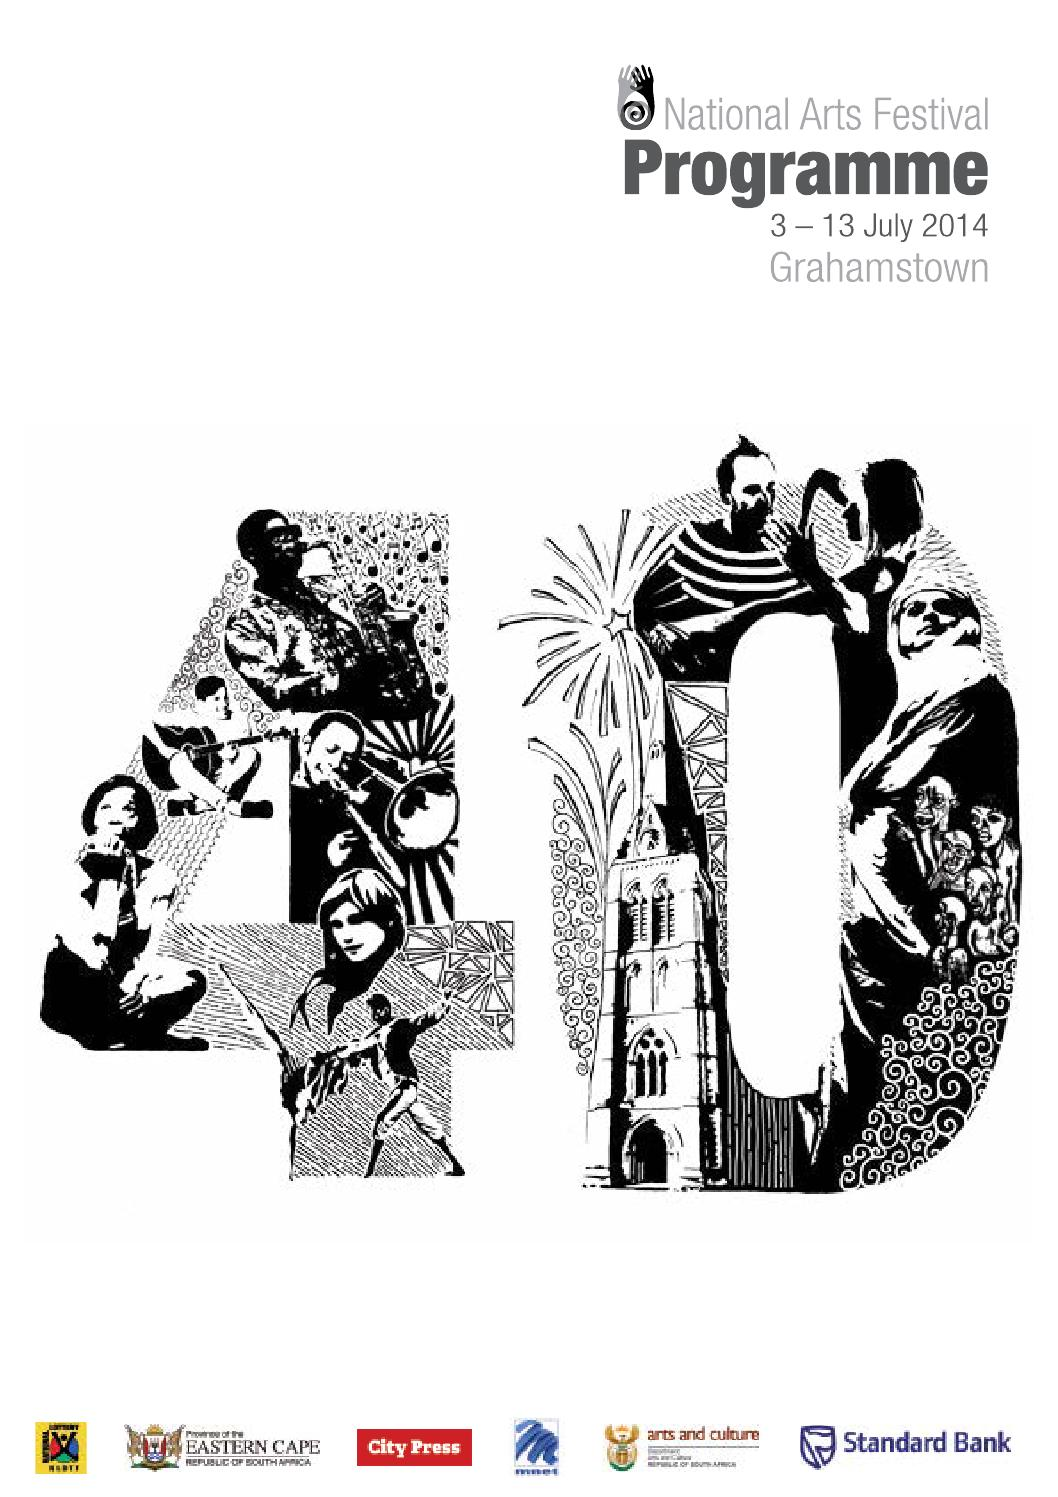 019f632a0e890 National Arts Festival Programme (2014) by Tony Lankester - issuu